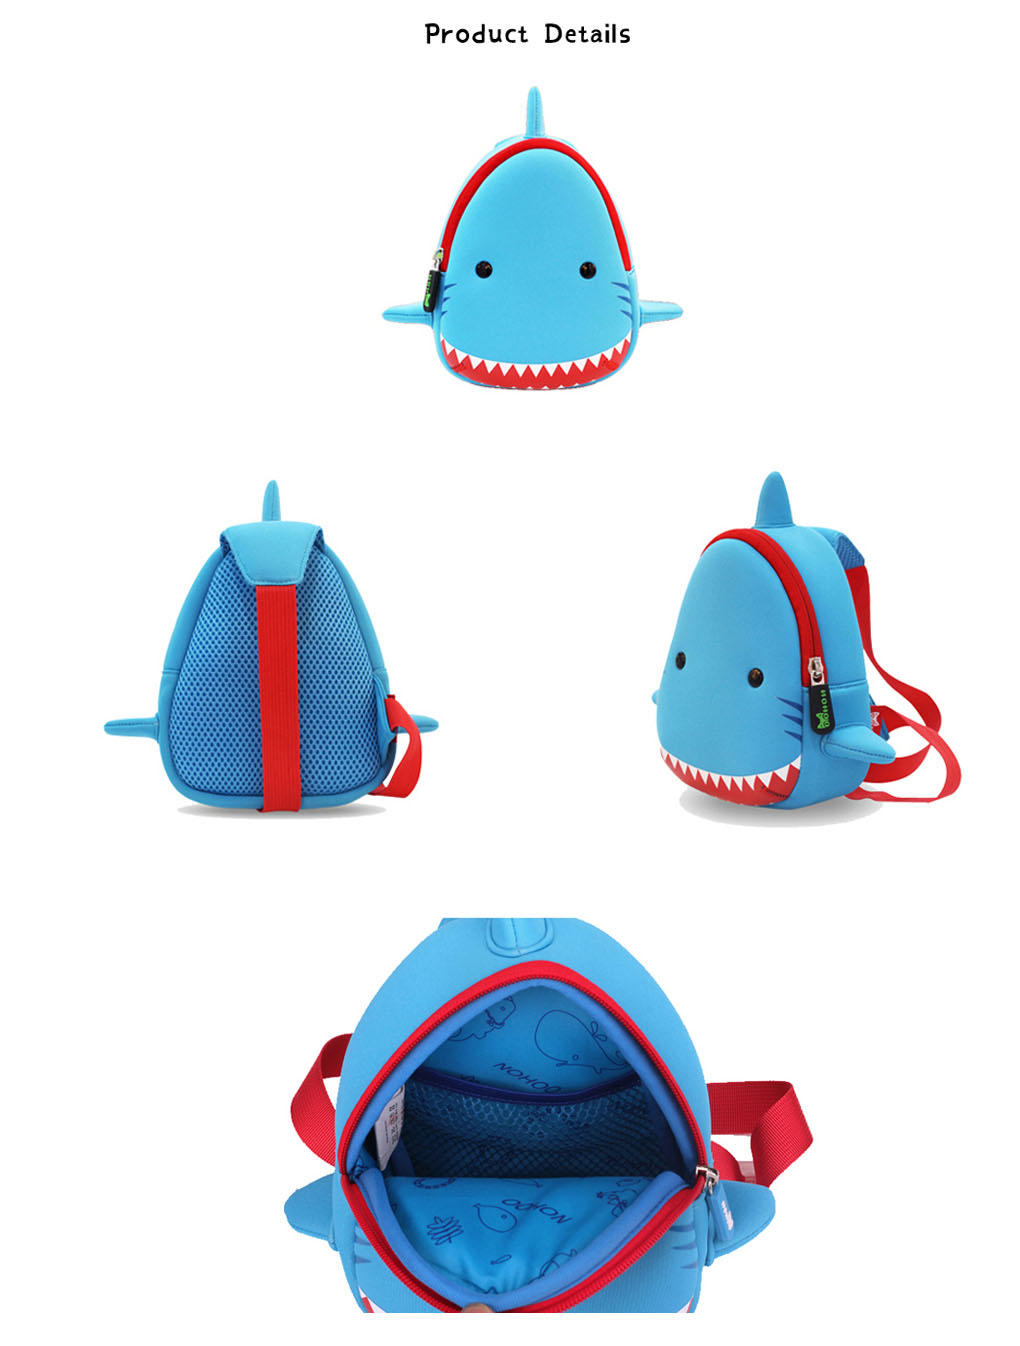 Nohoo Children Products-Manufacturer Of Ultralight Durable Outdoor Animal Bag Mini Chest Bag For